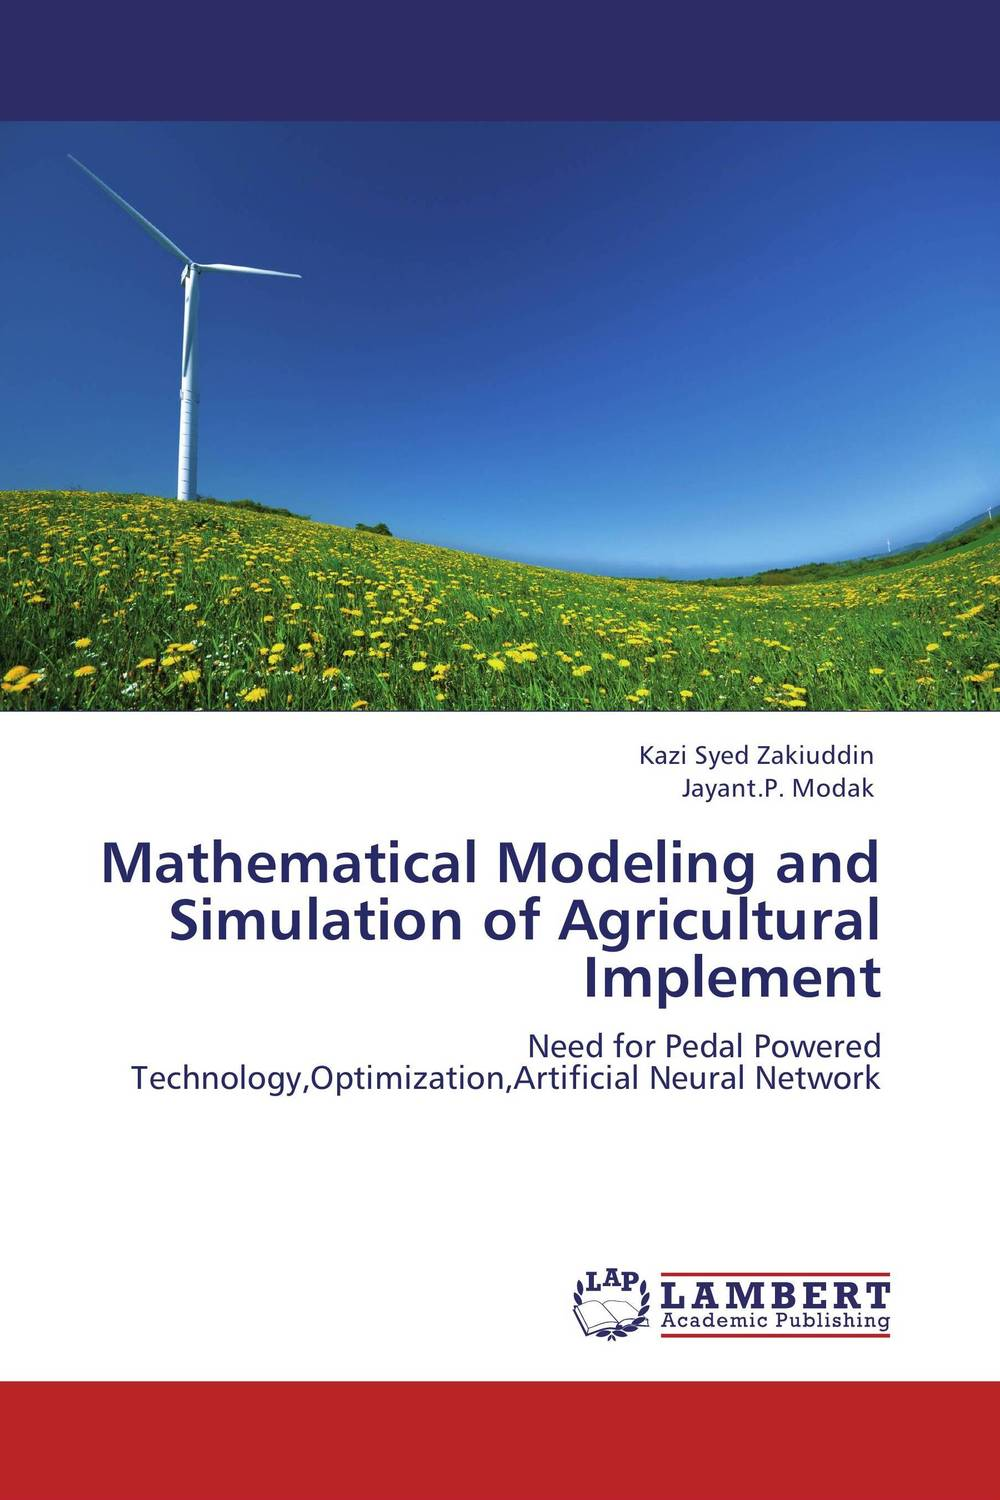 Mathematical Modeling and Simulation of Agricultural Implement